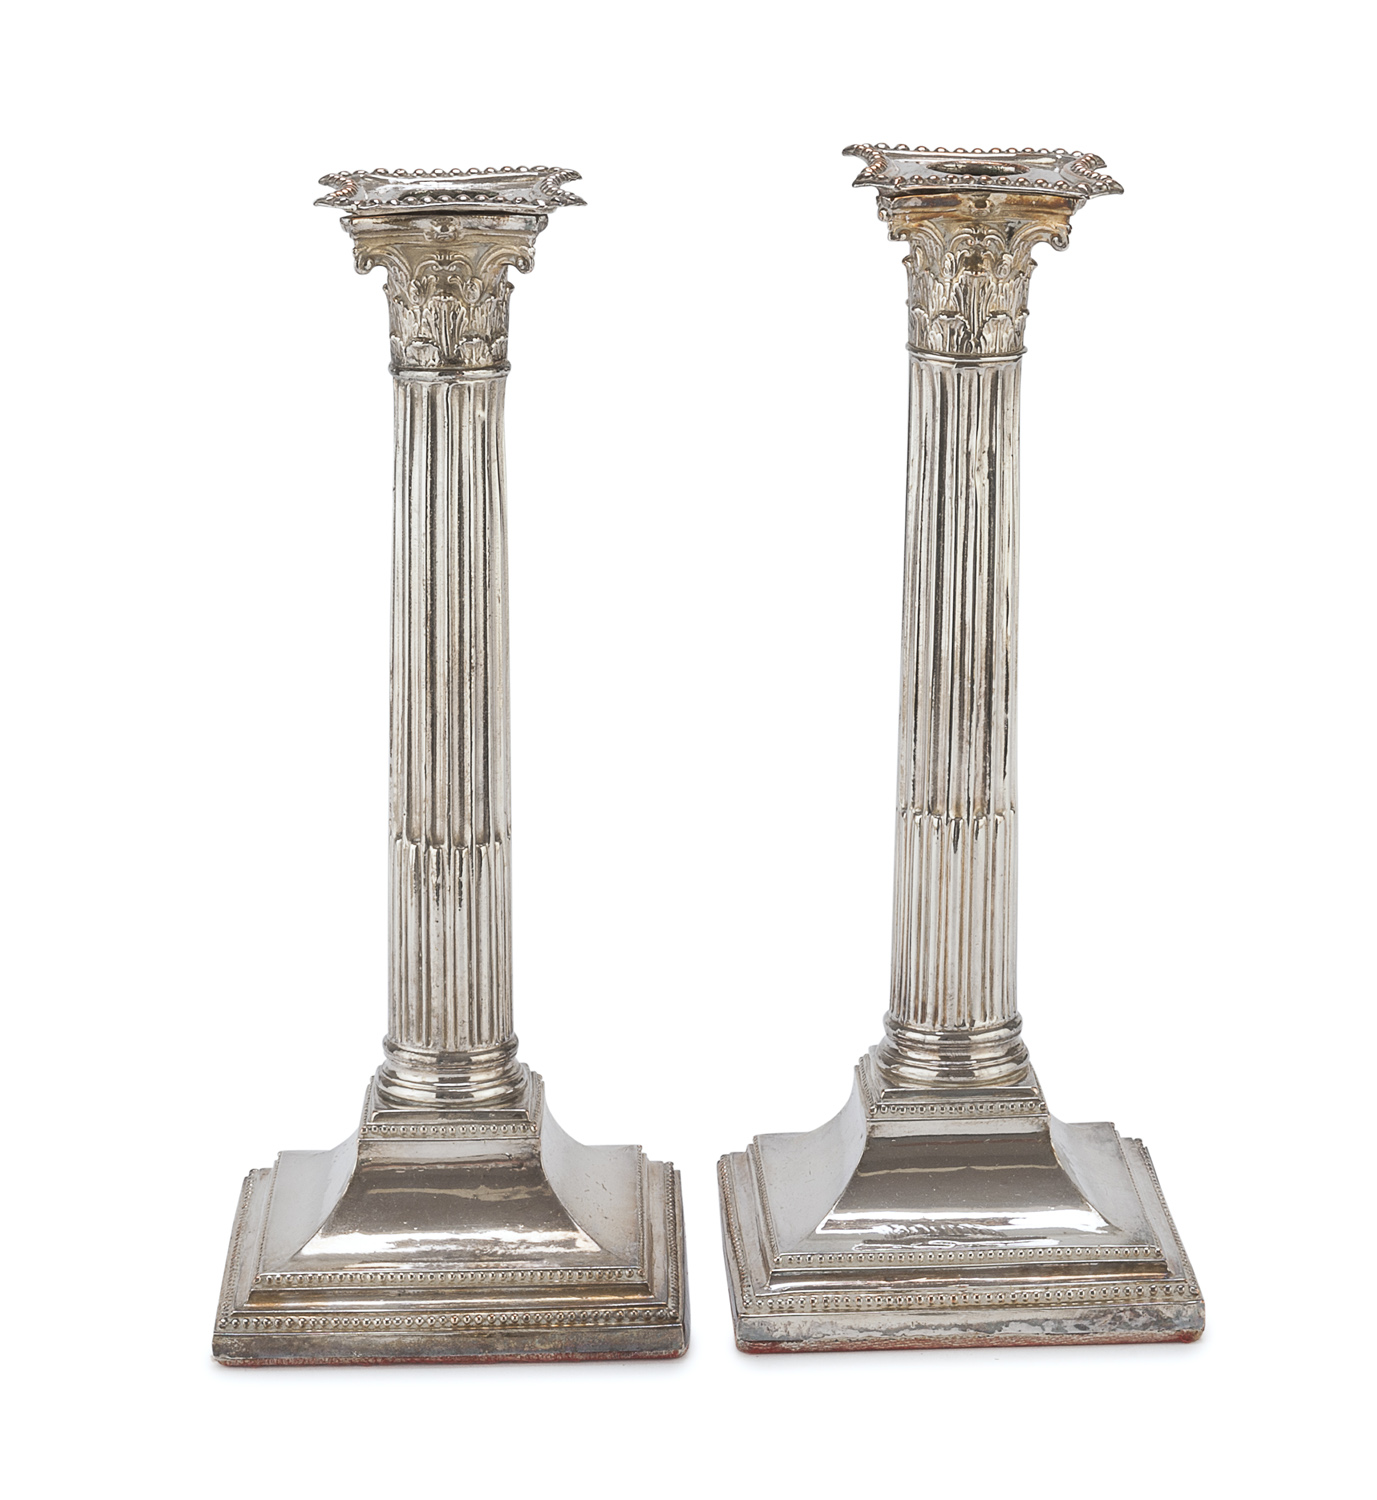 PAIR OF SILVER-PLATED CANDLESTICKS PROBABLY ITALY EARLY 20TH CENTURY